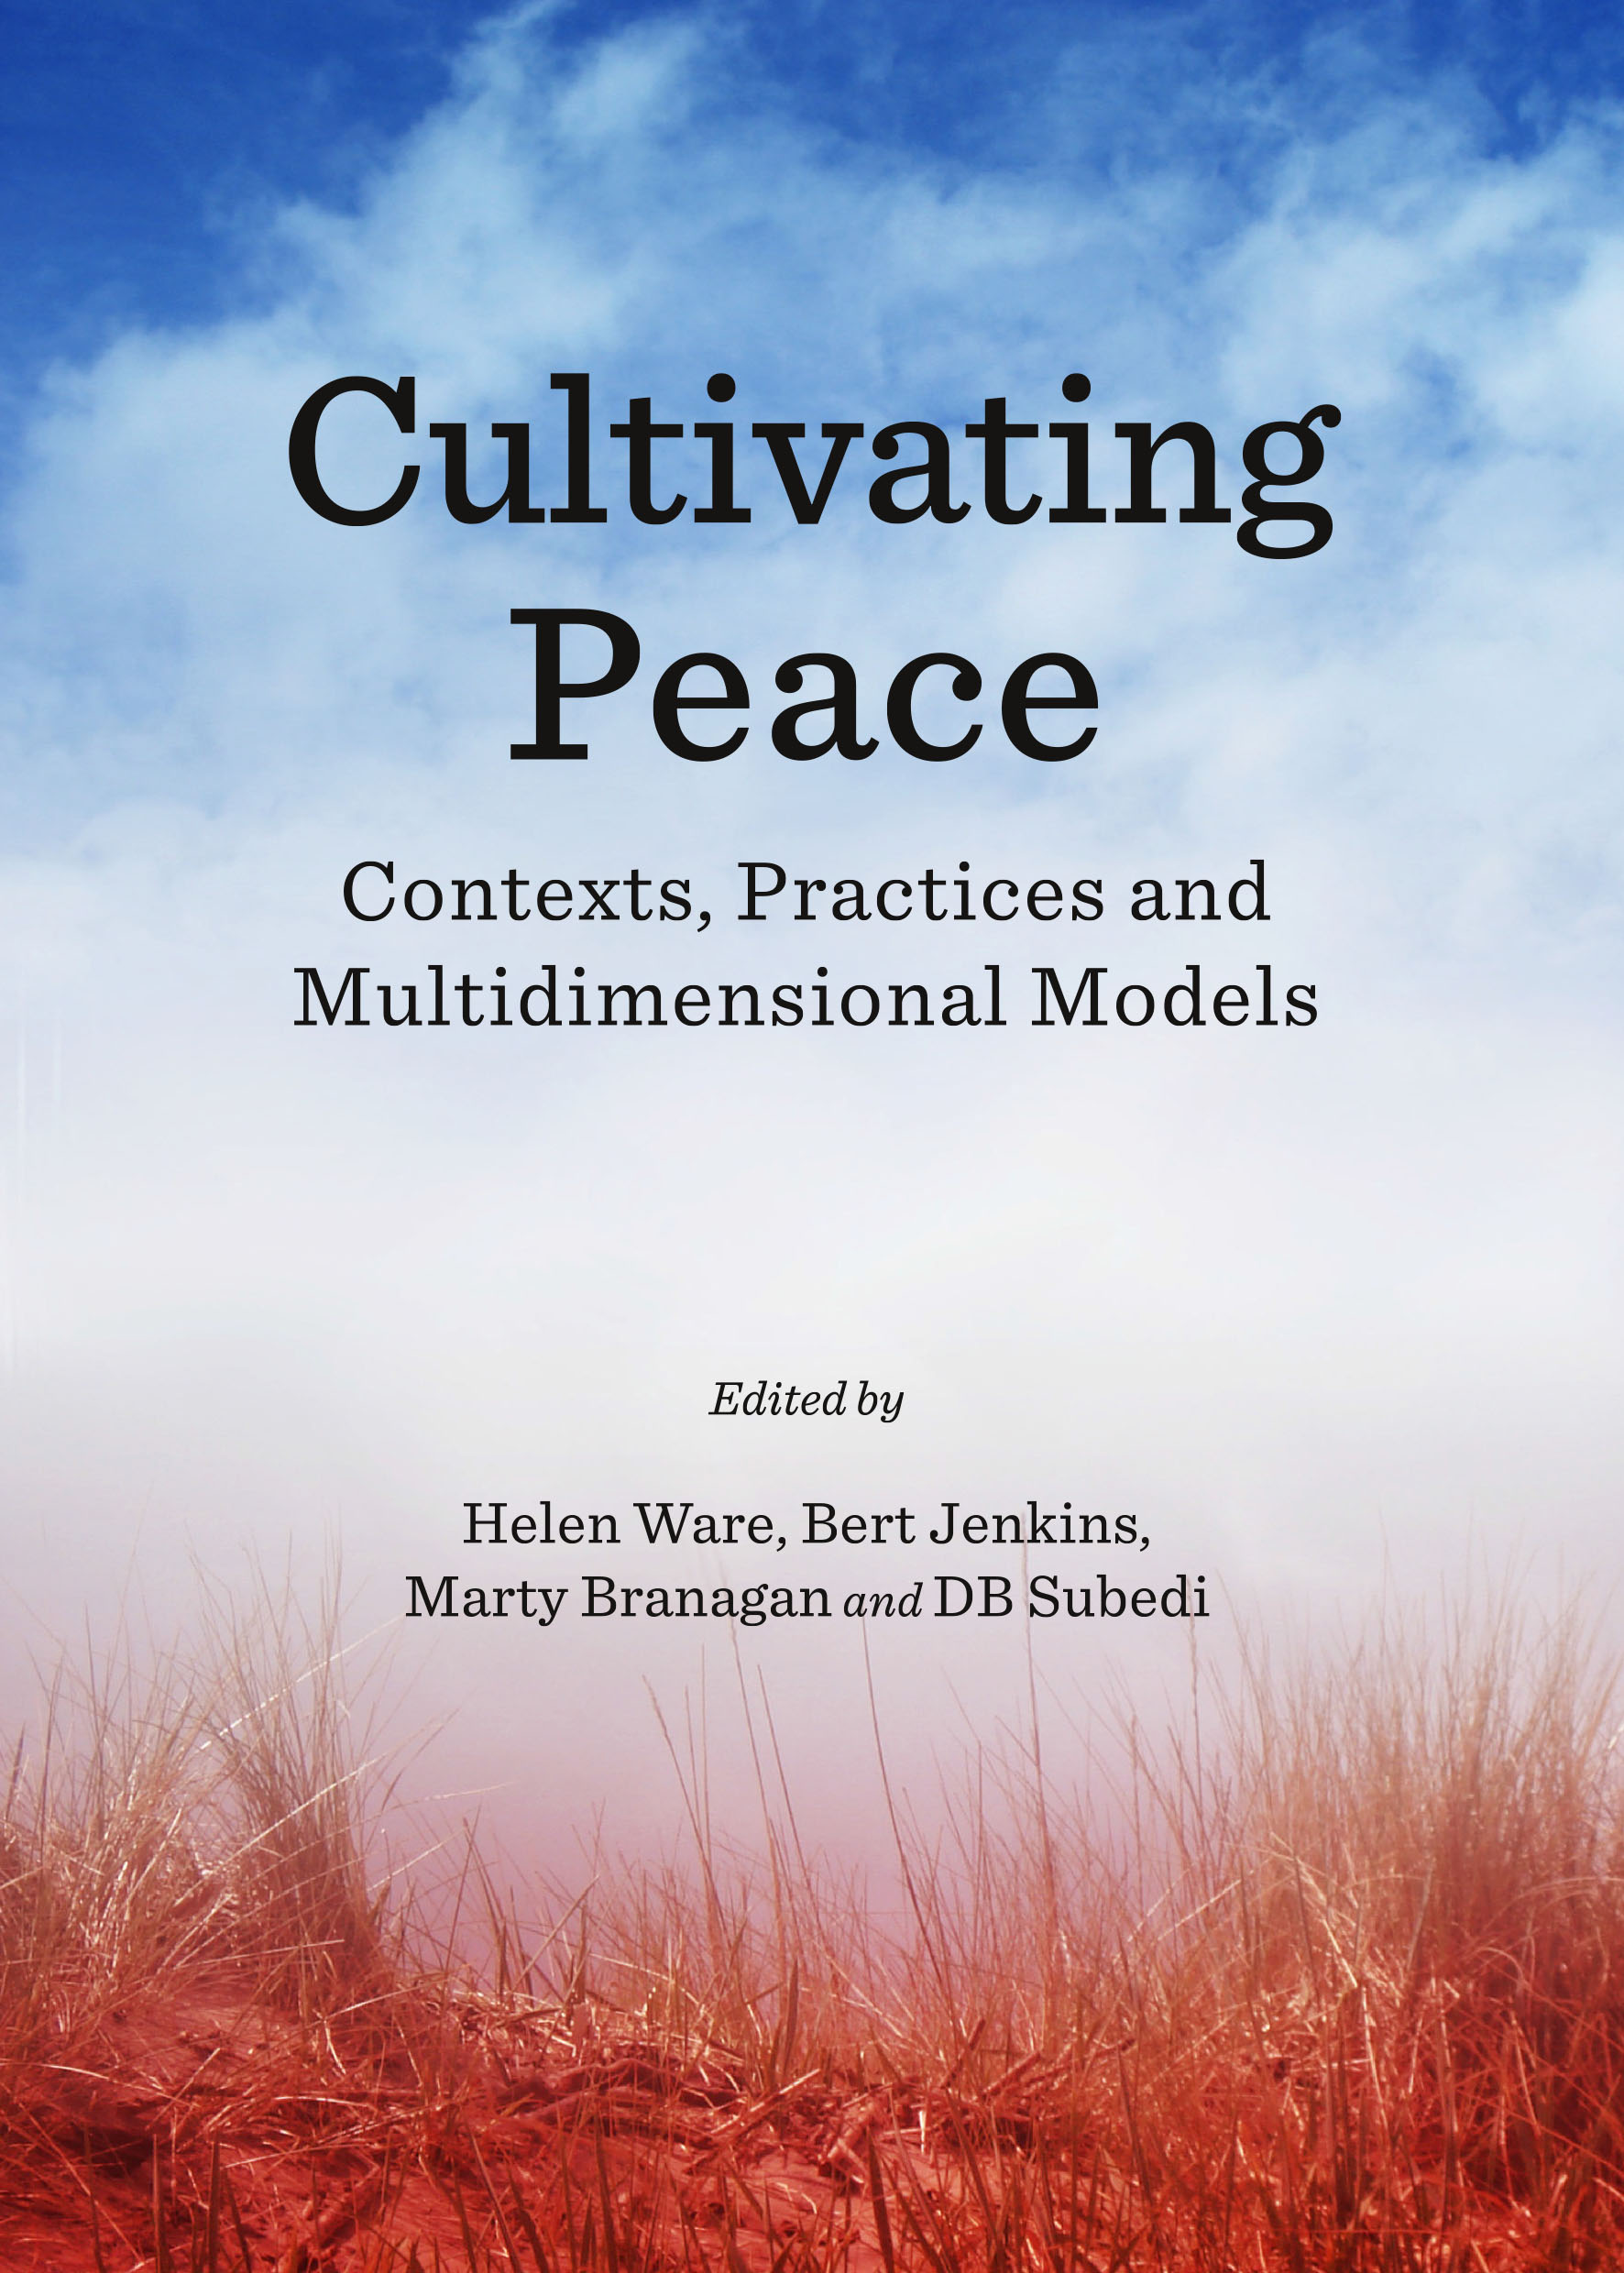 Cultivating Peace: Contexts, Practices and Multidimensional Models